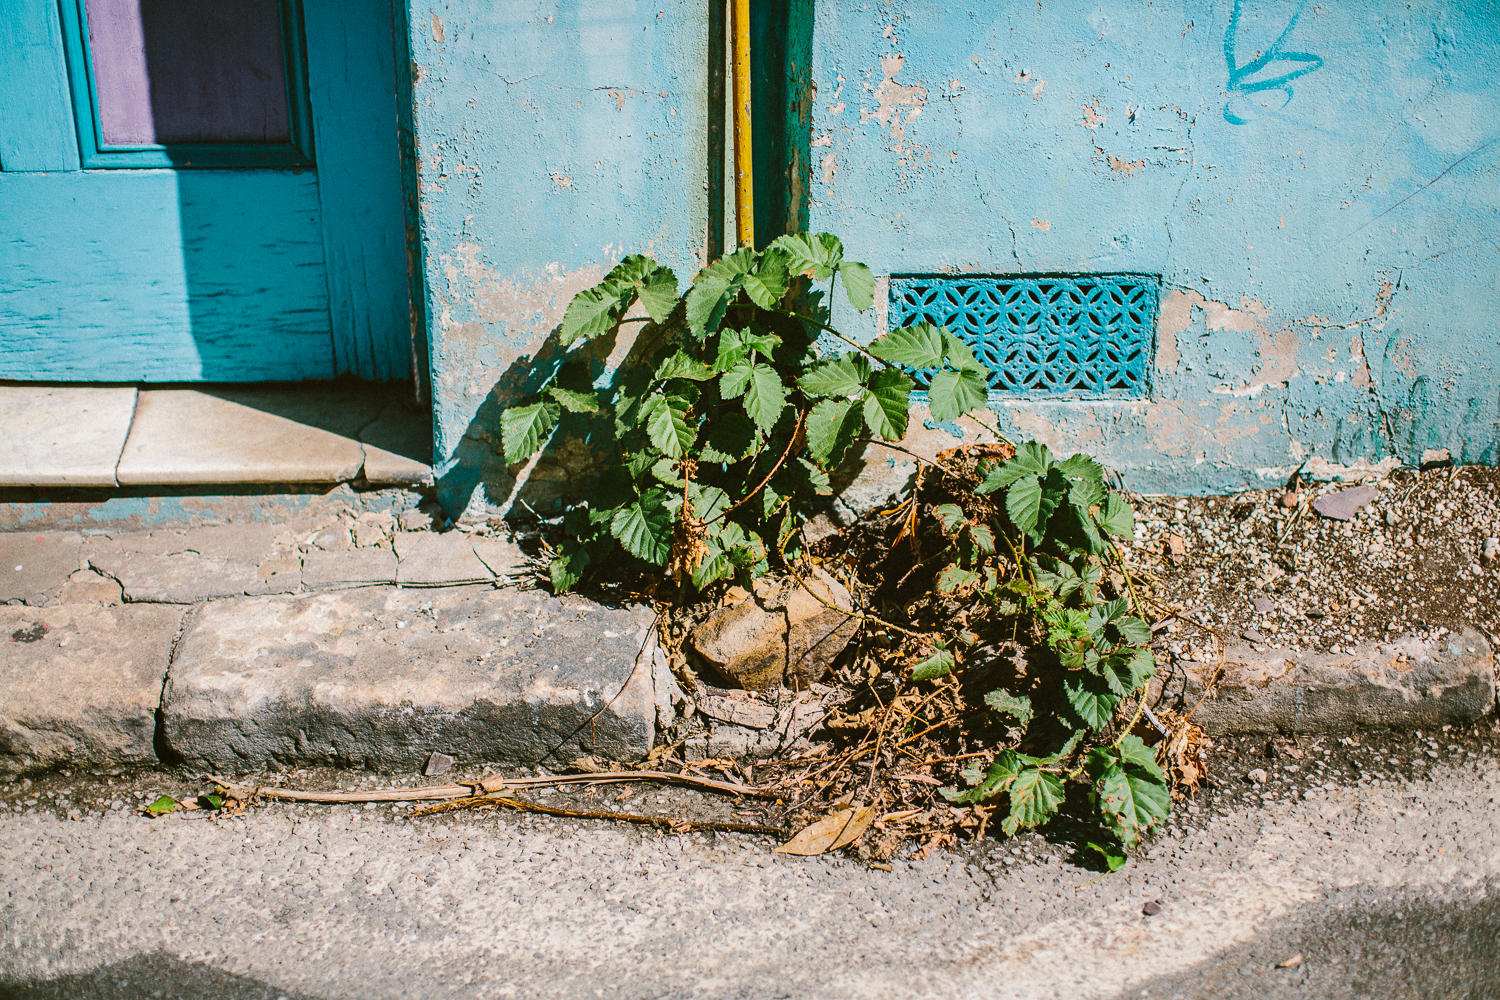 jkblackwell_twoguineapigs_darlinghurst_autumn_backstreets_streetscapes_urbanscapes_1500-03.jpg